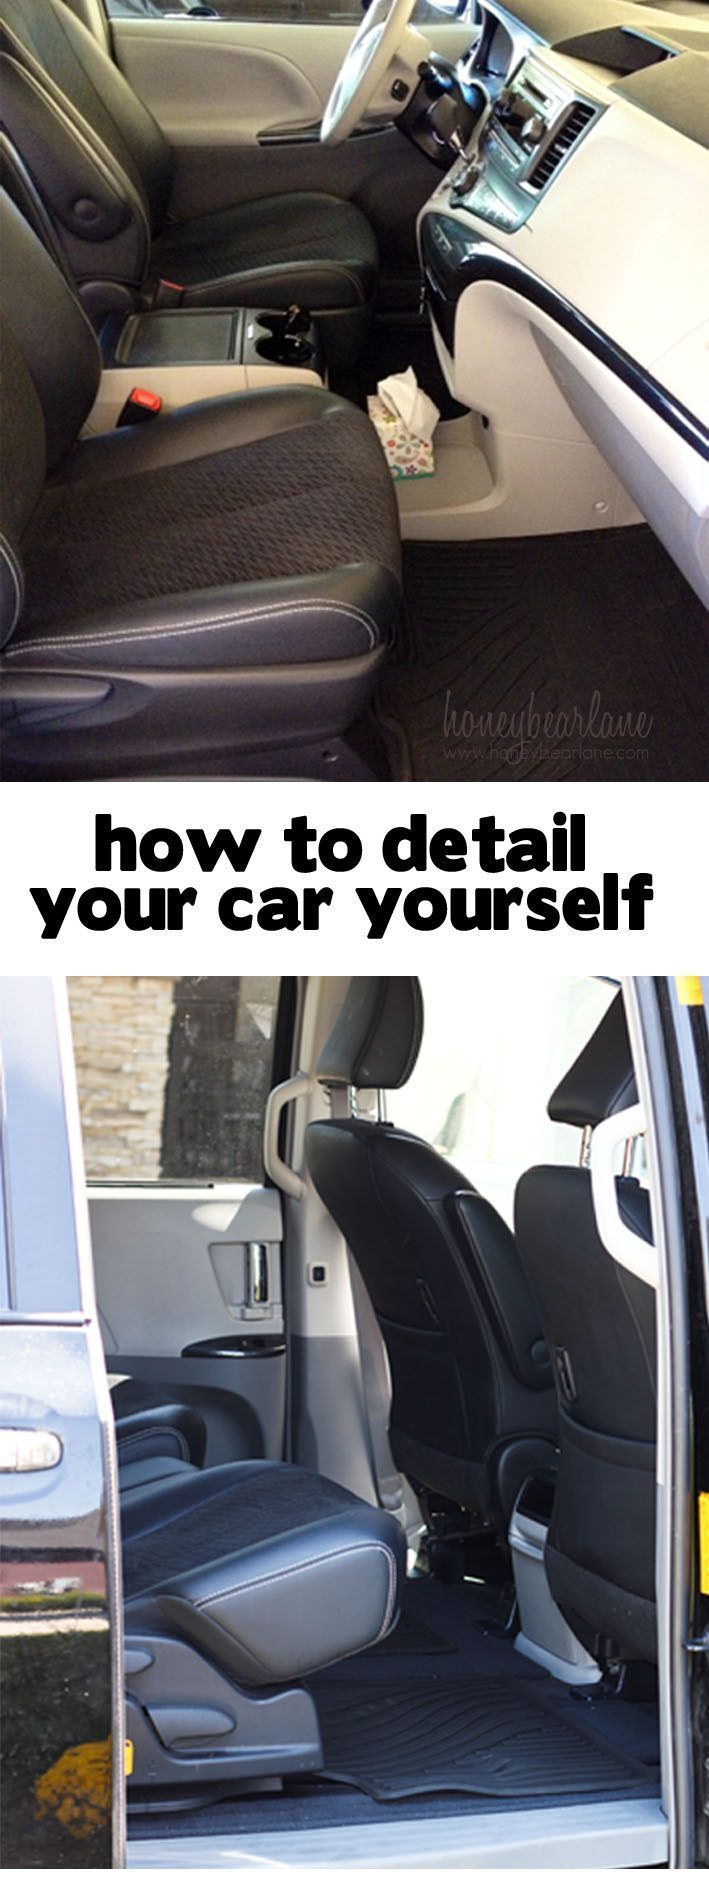 Car interior accessories for guys - How To Detail Your Car Yourself